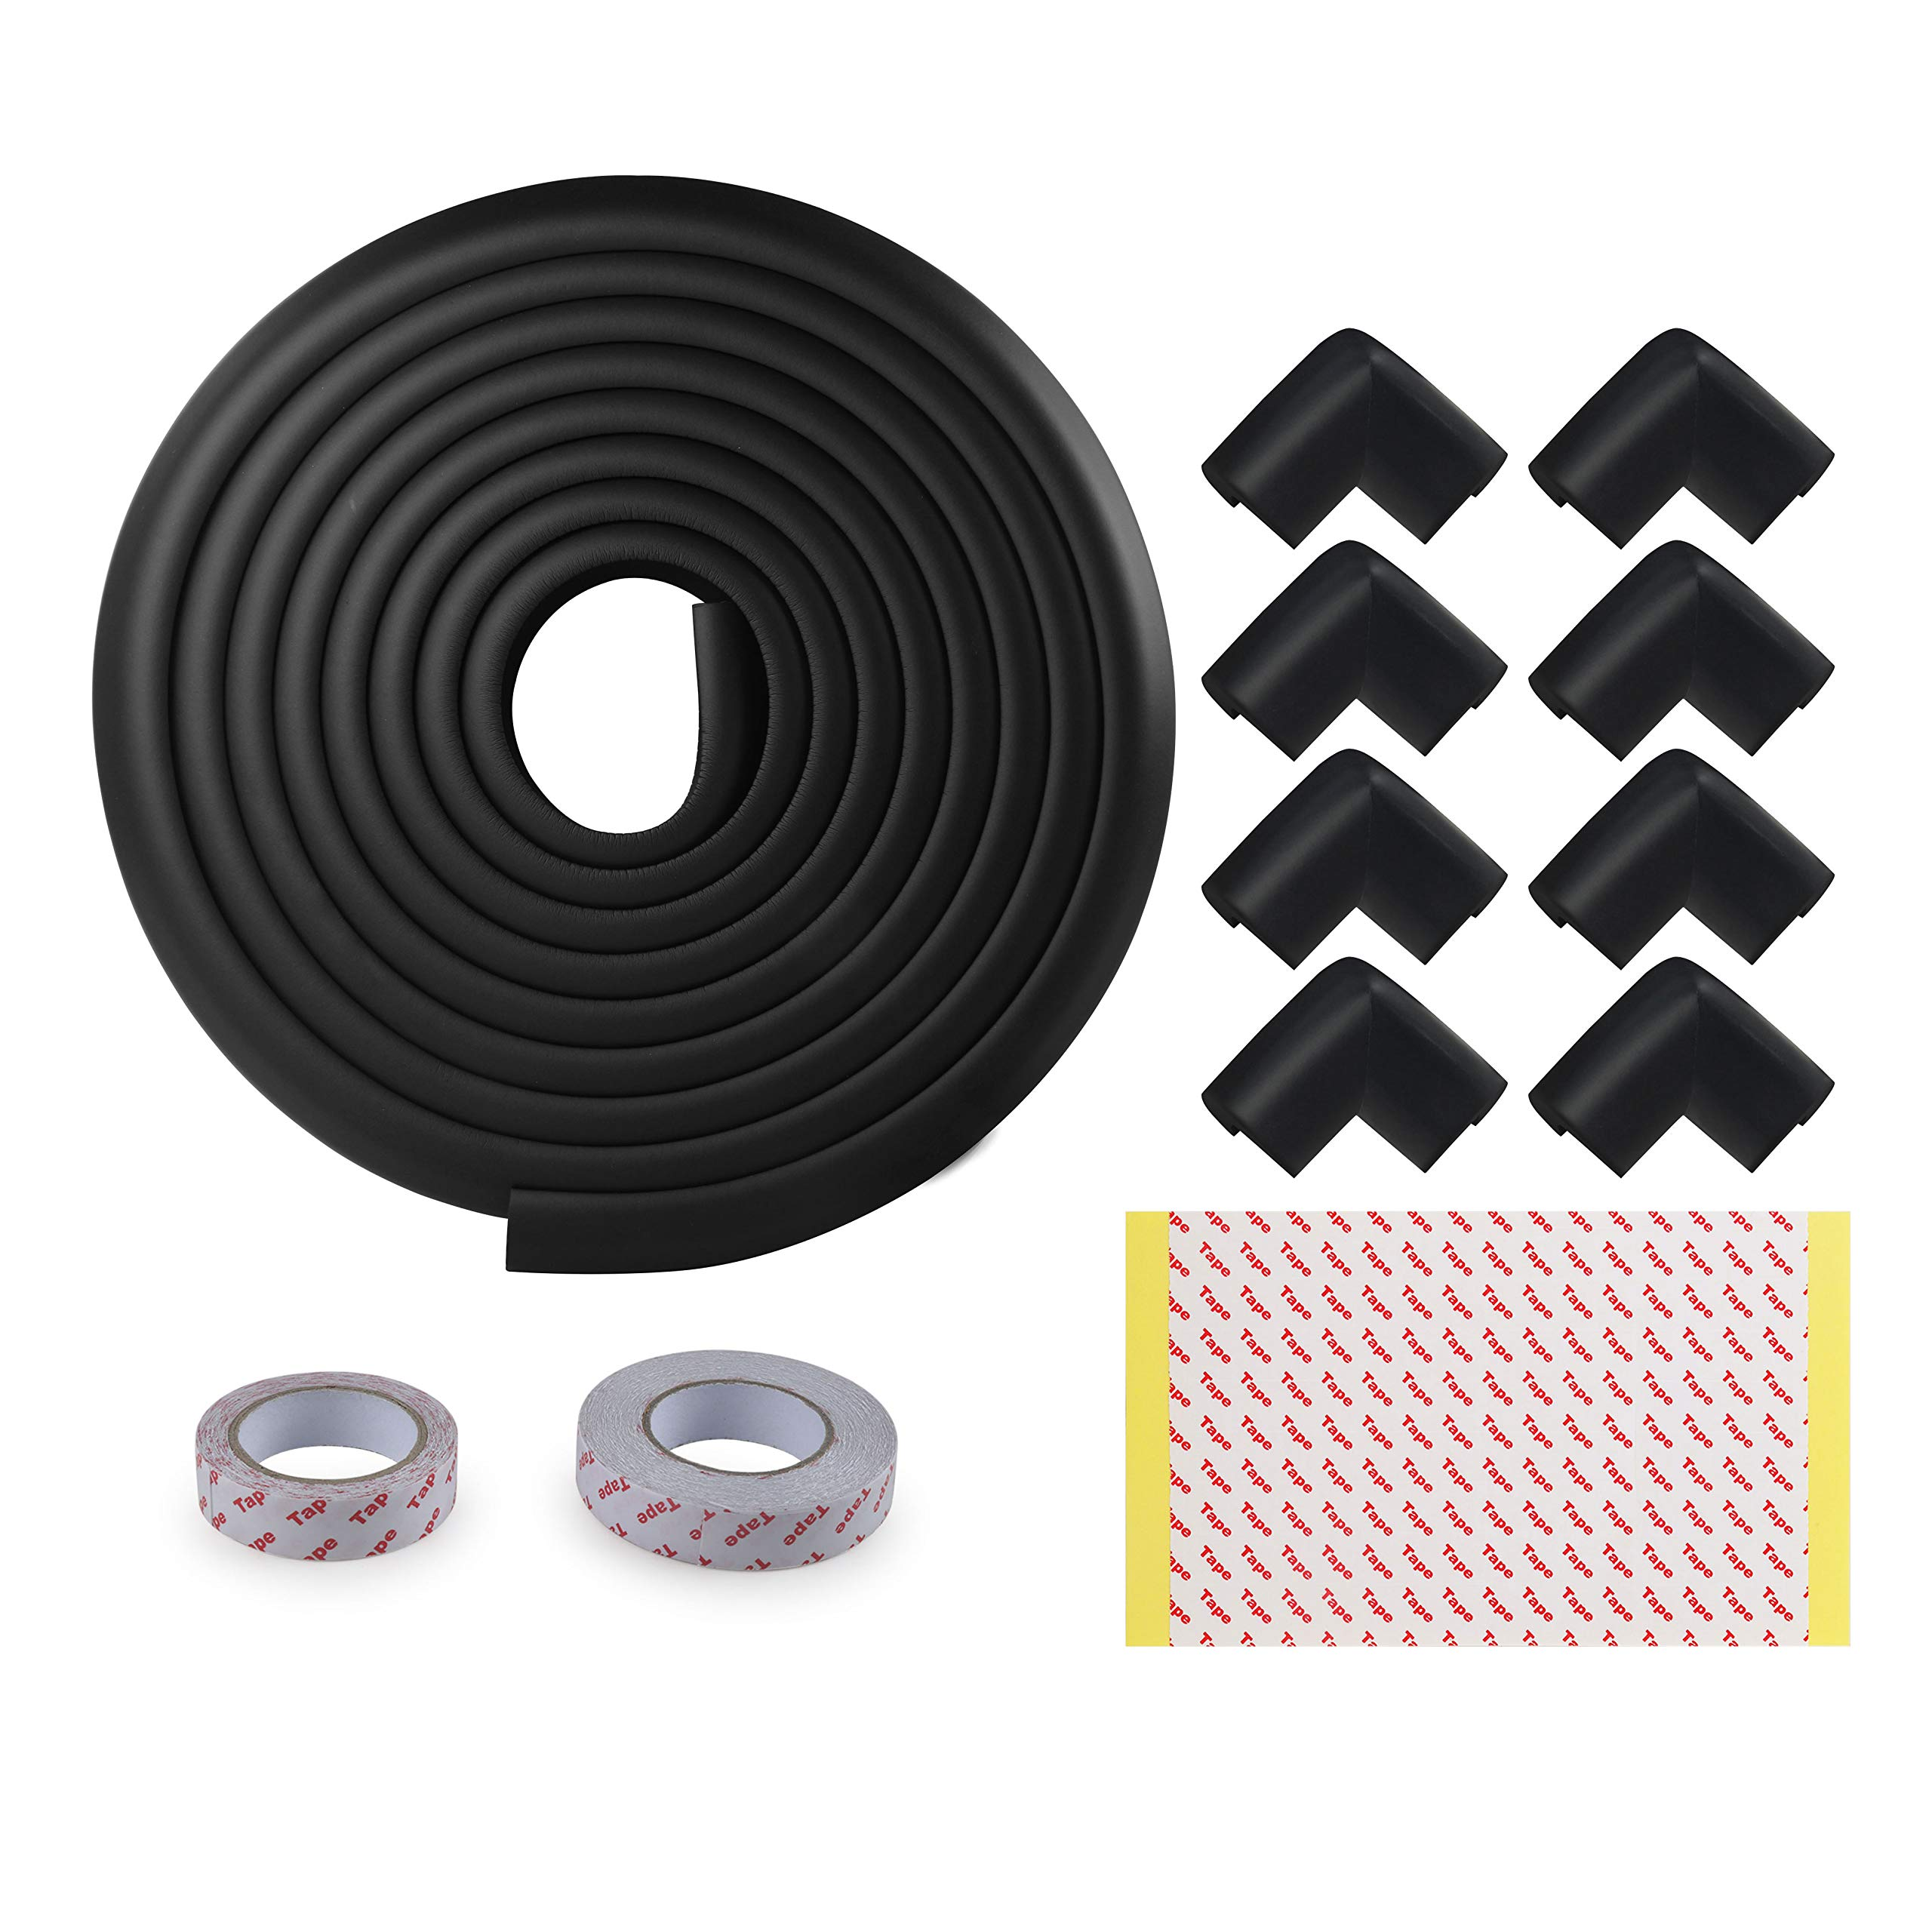 Table Edge Protector, WEBI [16.4ft Edge+8Corners+2Tapes] Kids Child Safety Corner Guard Long Cushion Furniture Bumper Baby Proofing Home Kit for Coffee Desk Fireplace Hearth Counter Top,Black